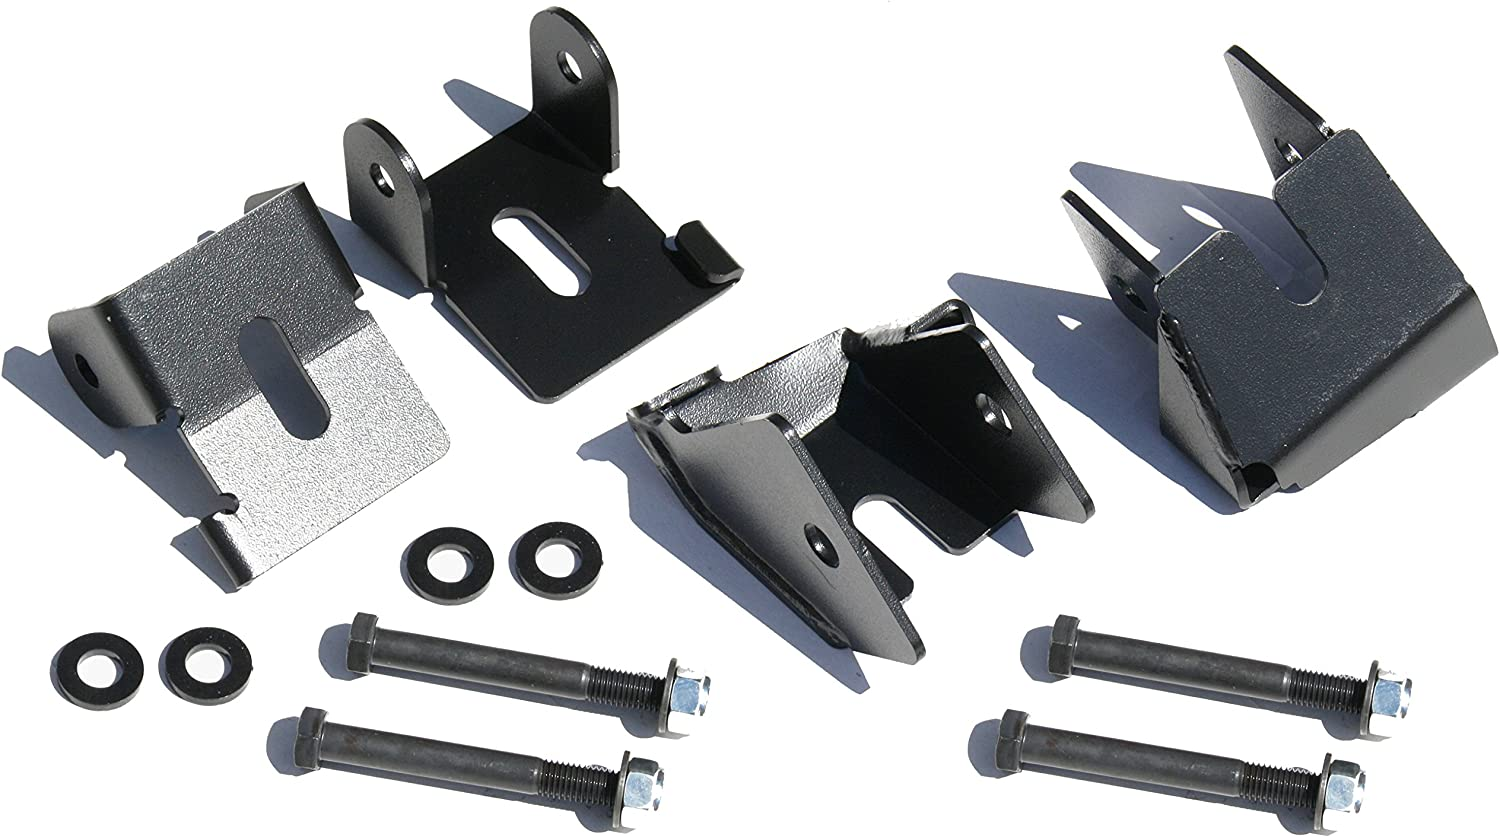 Current Rock Hard 4x4 Bolt-ON Front and Rear Lower Control ARM Skid Plates for Jeep Wrangler JL 2018 RH-90515